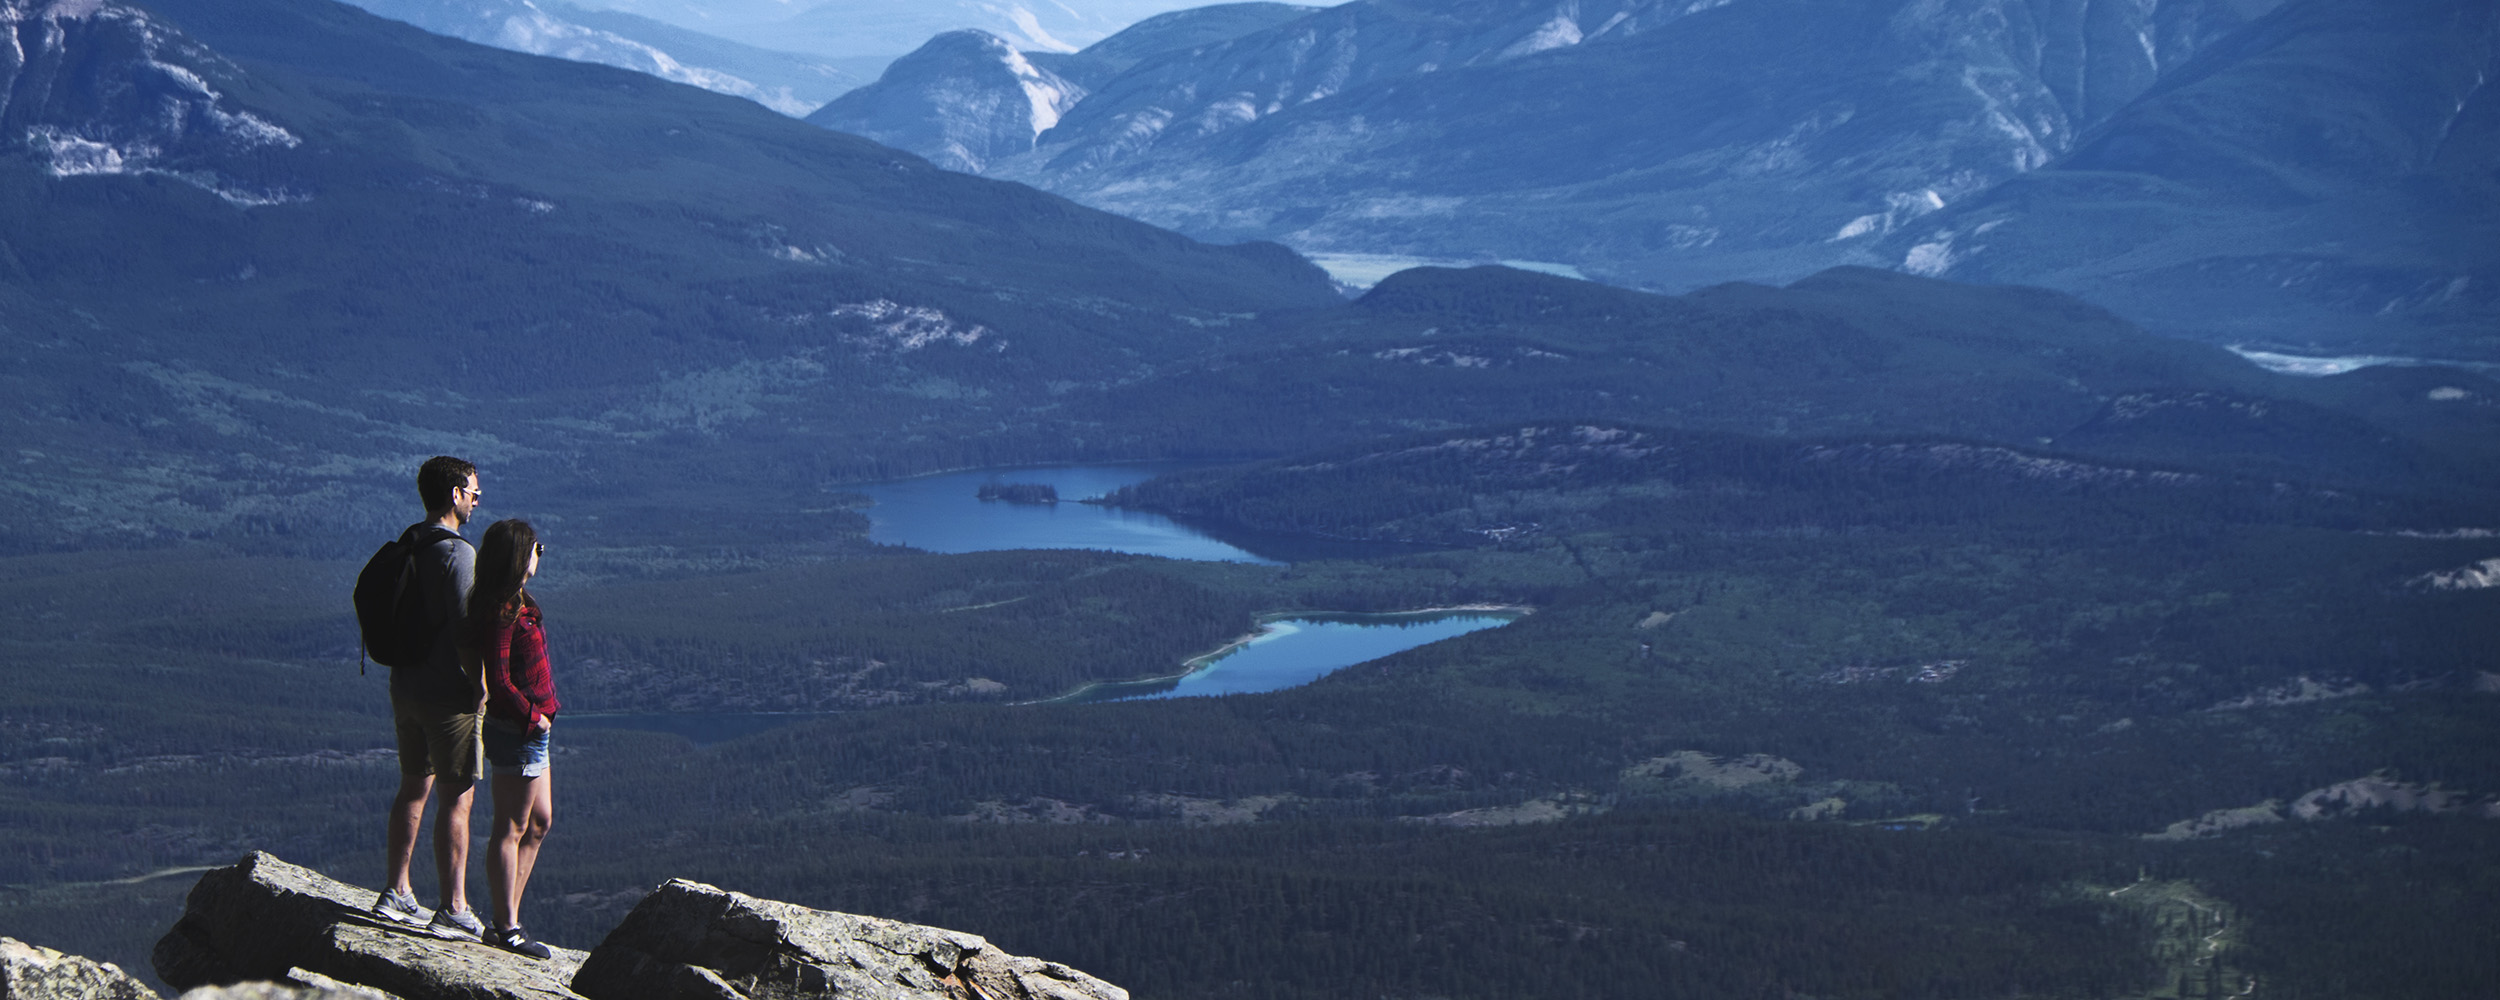 A couple looks out over the Jasper valley from an alpine view point